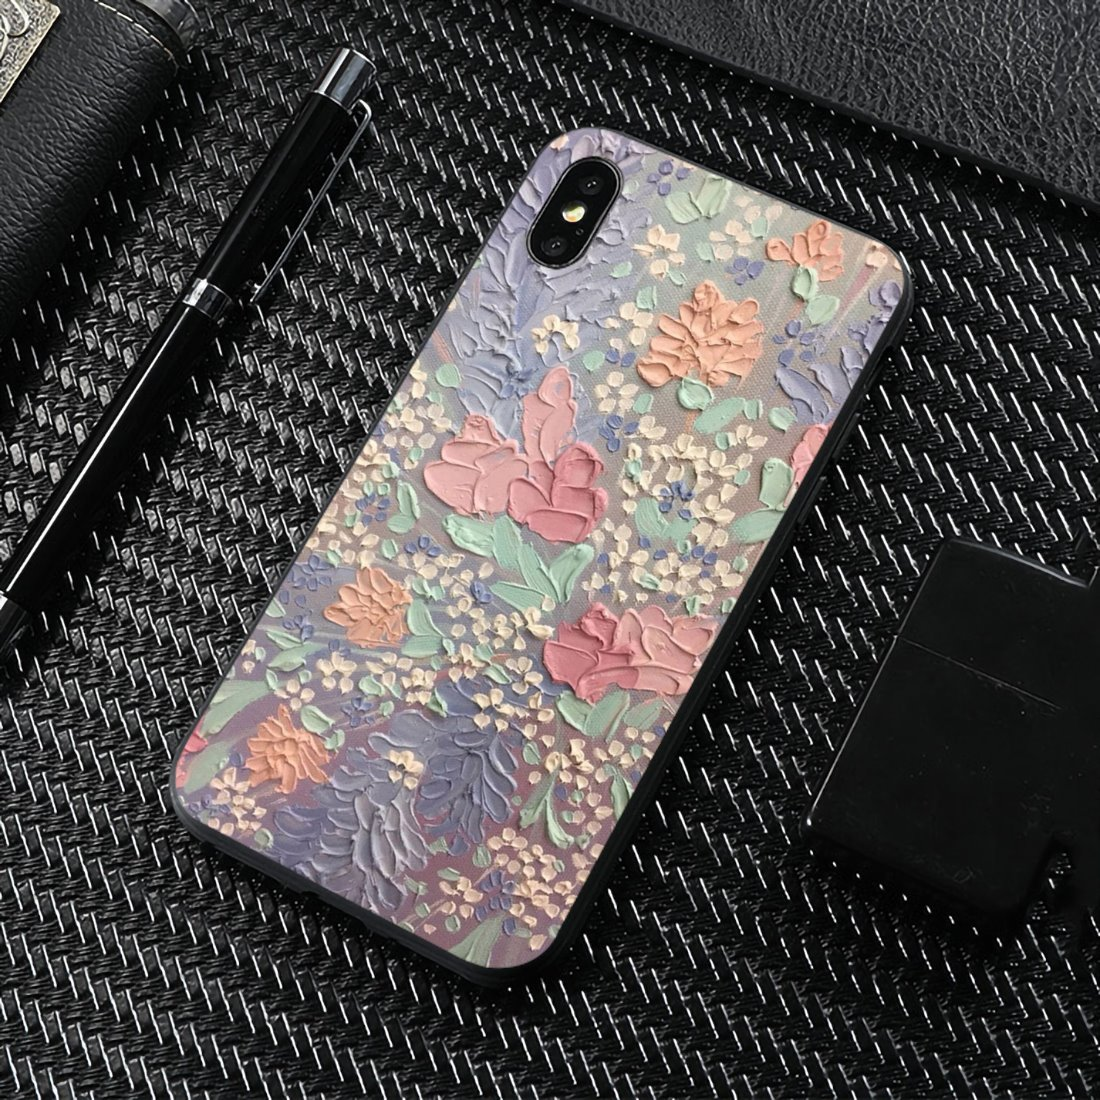 Cute Classic Painting Flower Aesthetic For LG G2 G3 G4 Mini G5 G6 G7 Q6 Q7 Q8 Q9 V10 V20 V30 X Power 2 3 Spirit Soft Shell Case